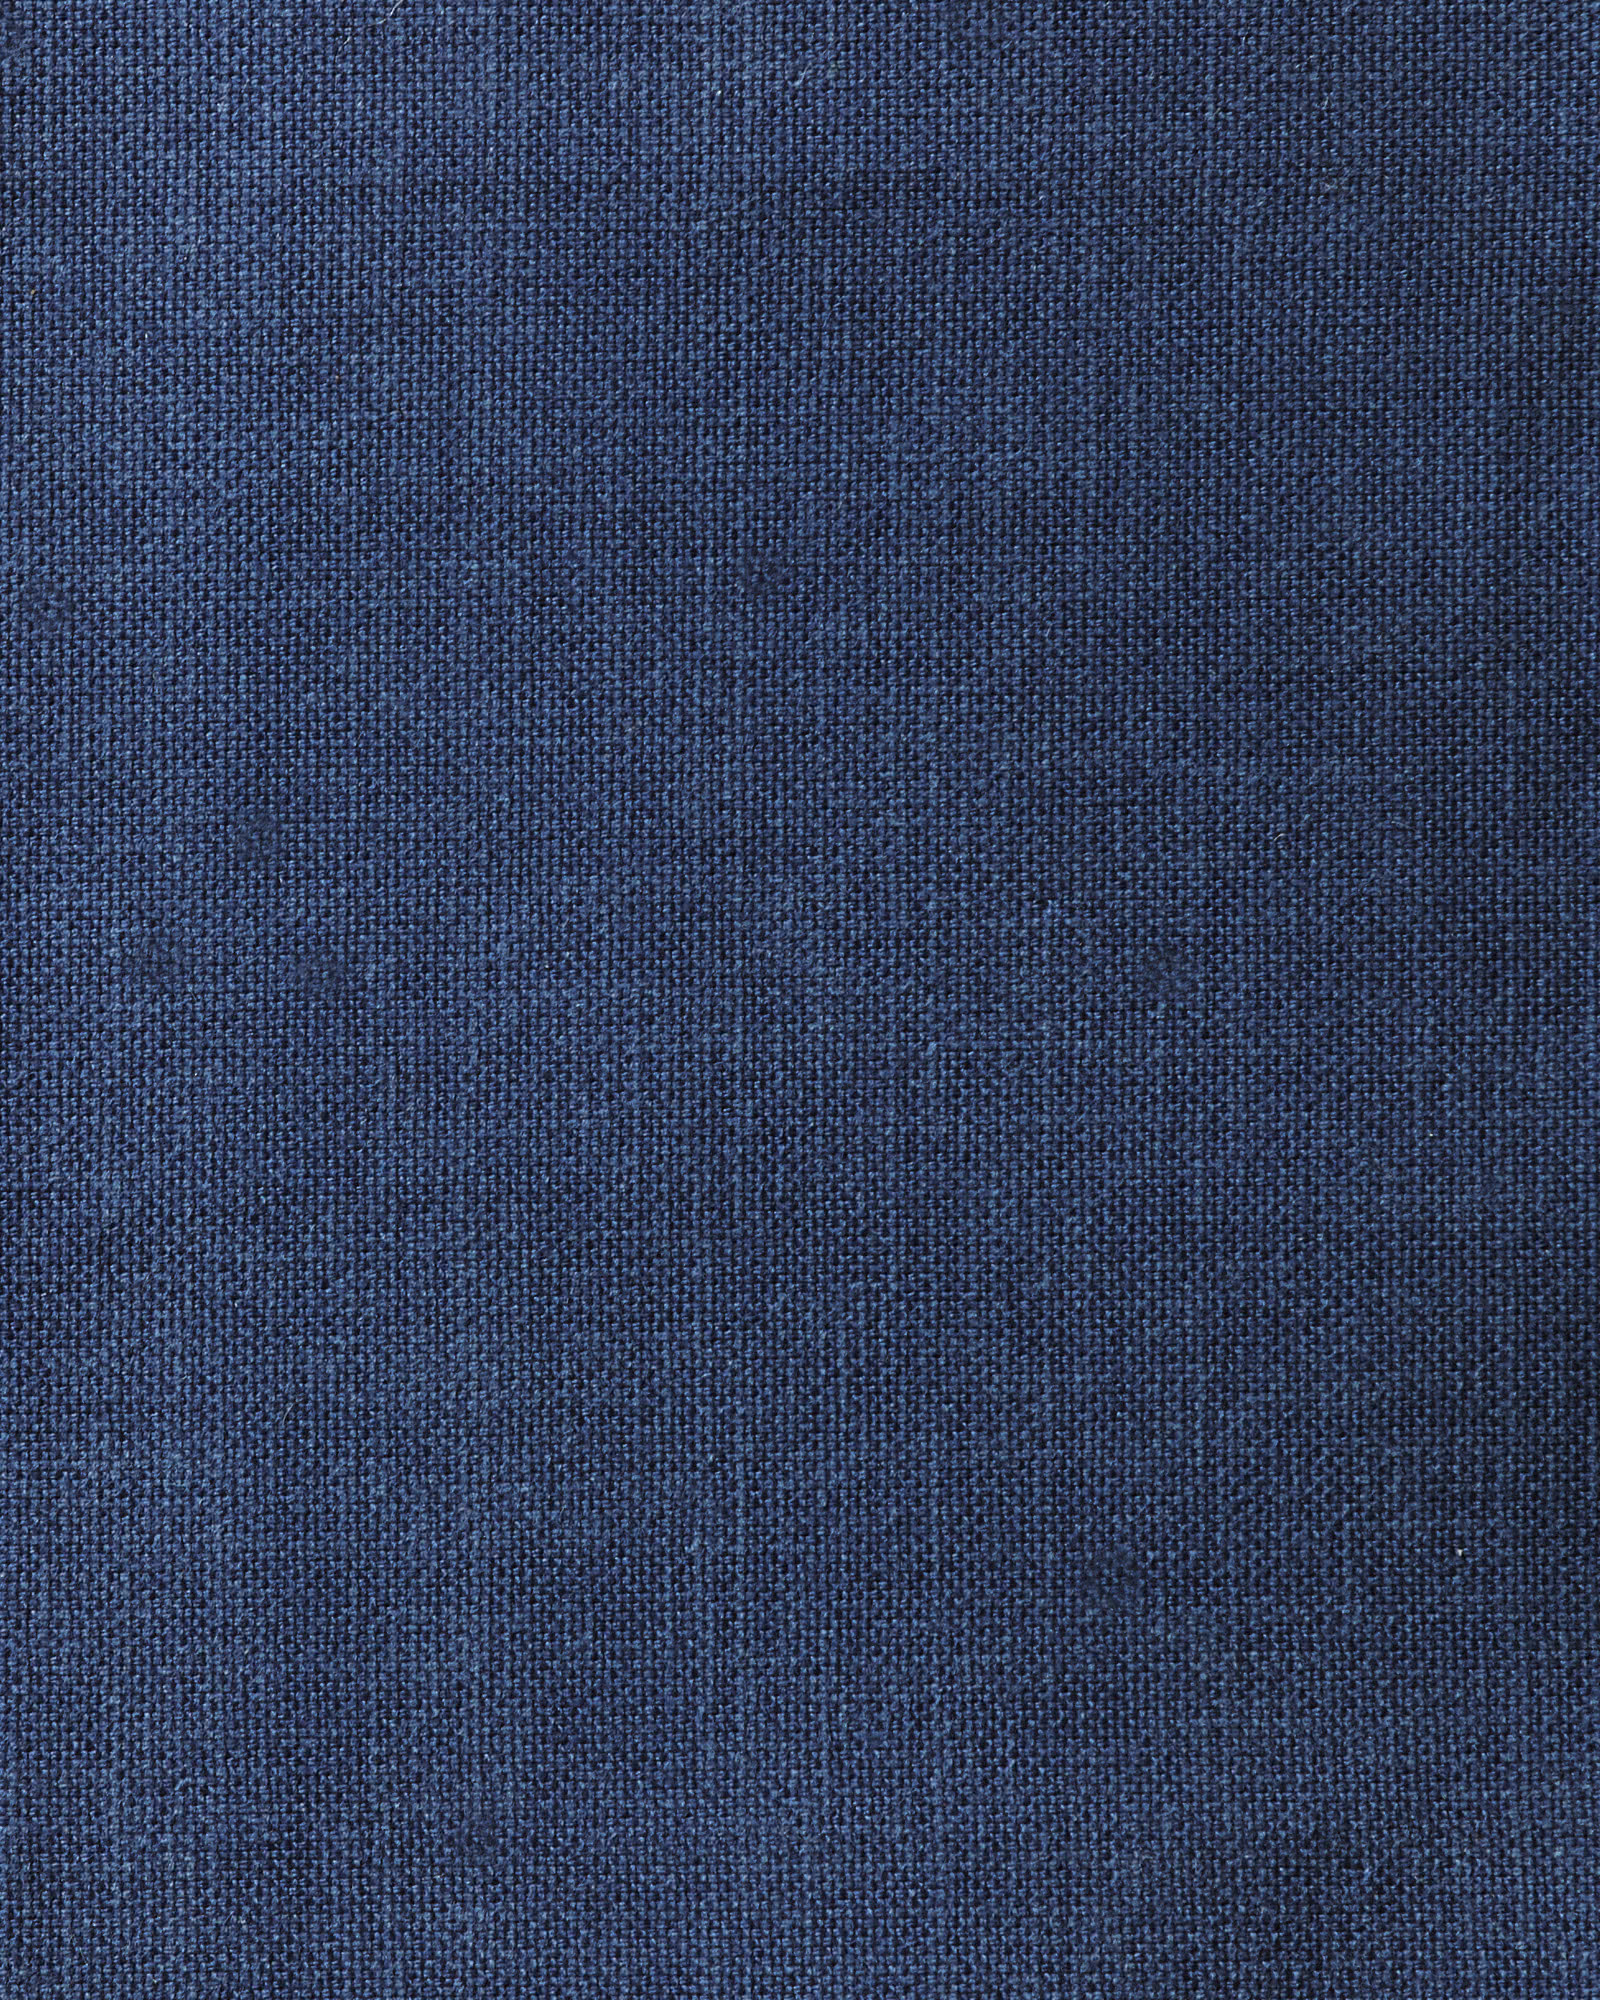 Fabric by the Yard – Brushed Cotton Canvas, Denim